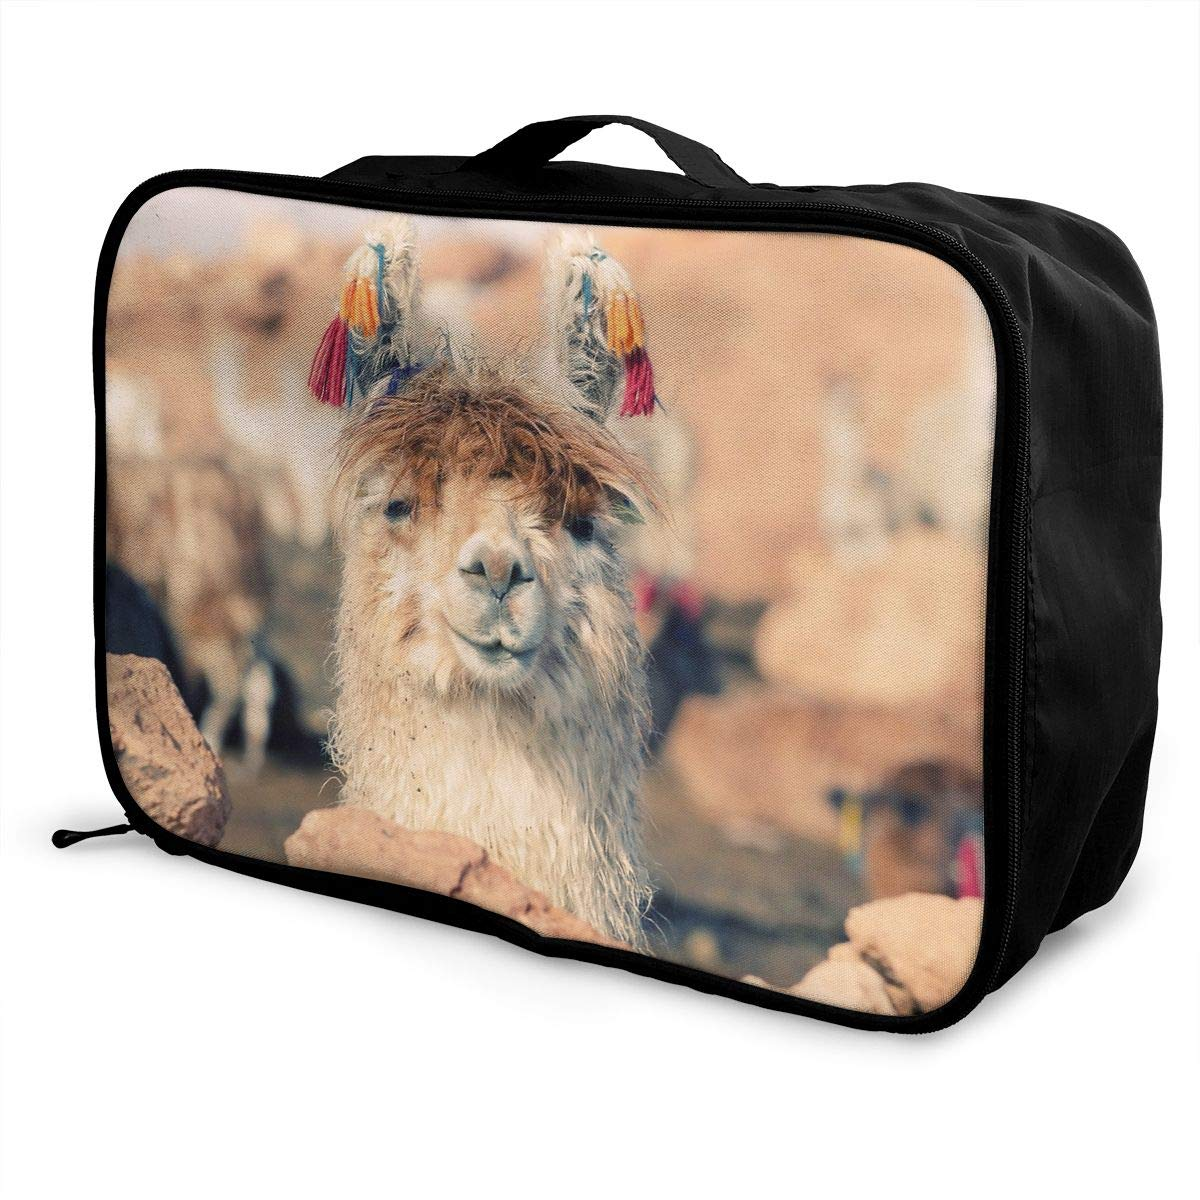 Travel Luggage Duffle Bag Lightweight Portable Handbag Alpaca Lama Print Large Capacity Waterproof Foldable Storage Tote